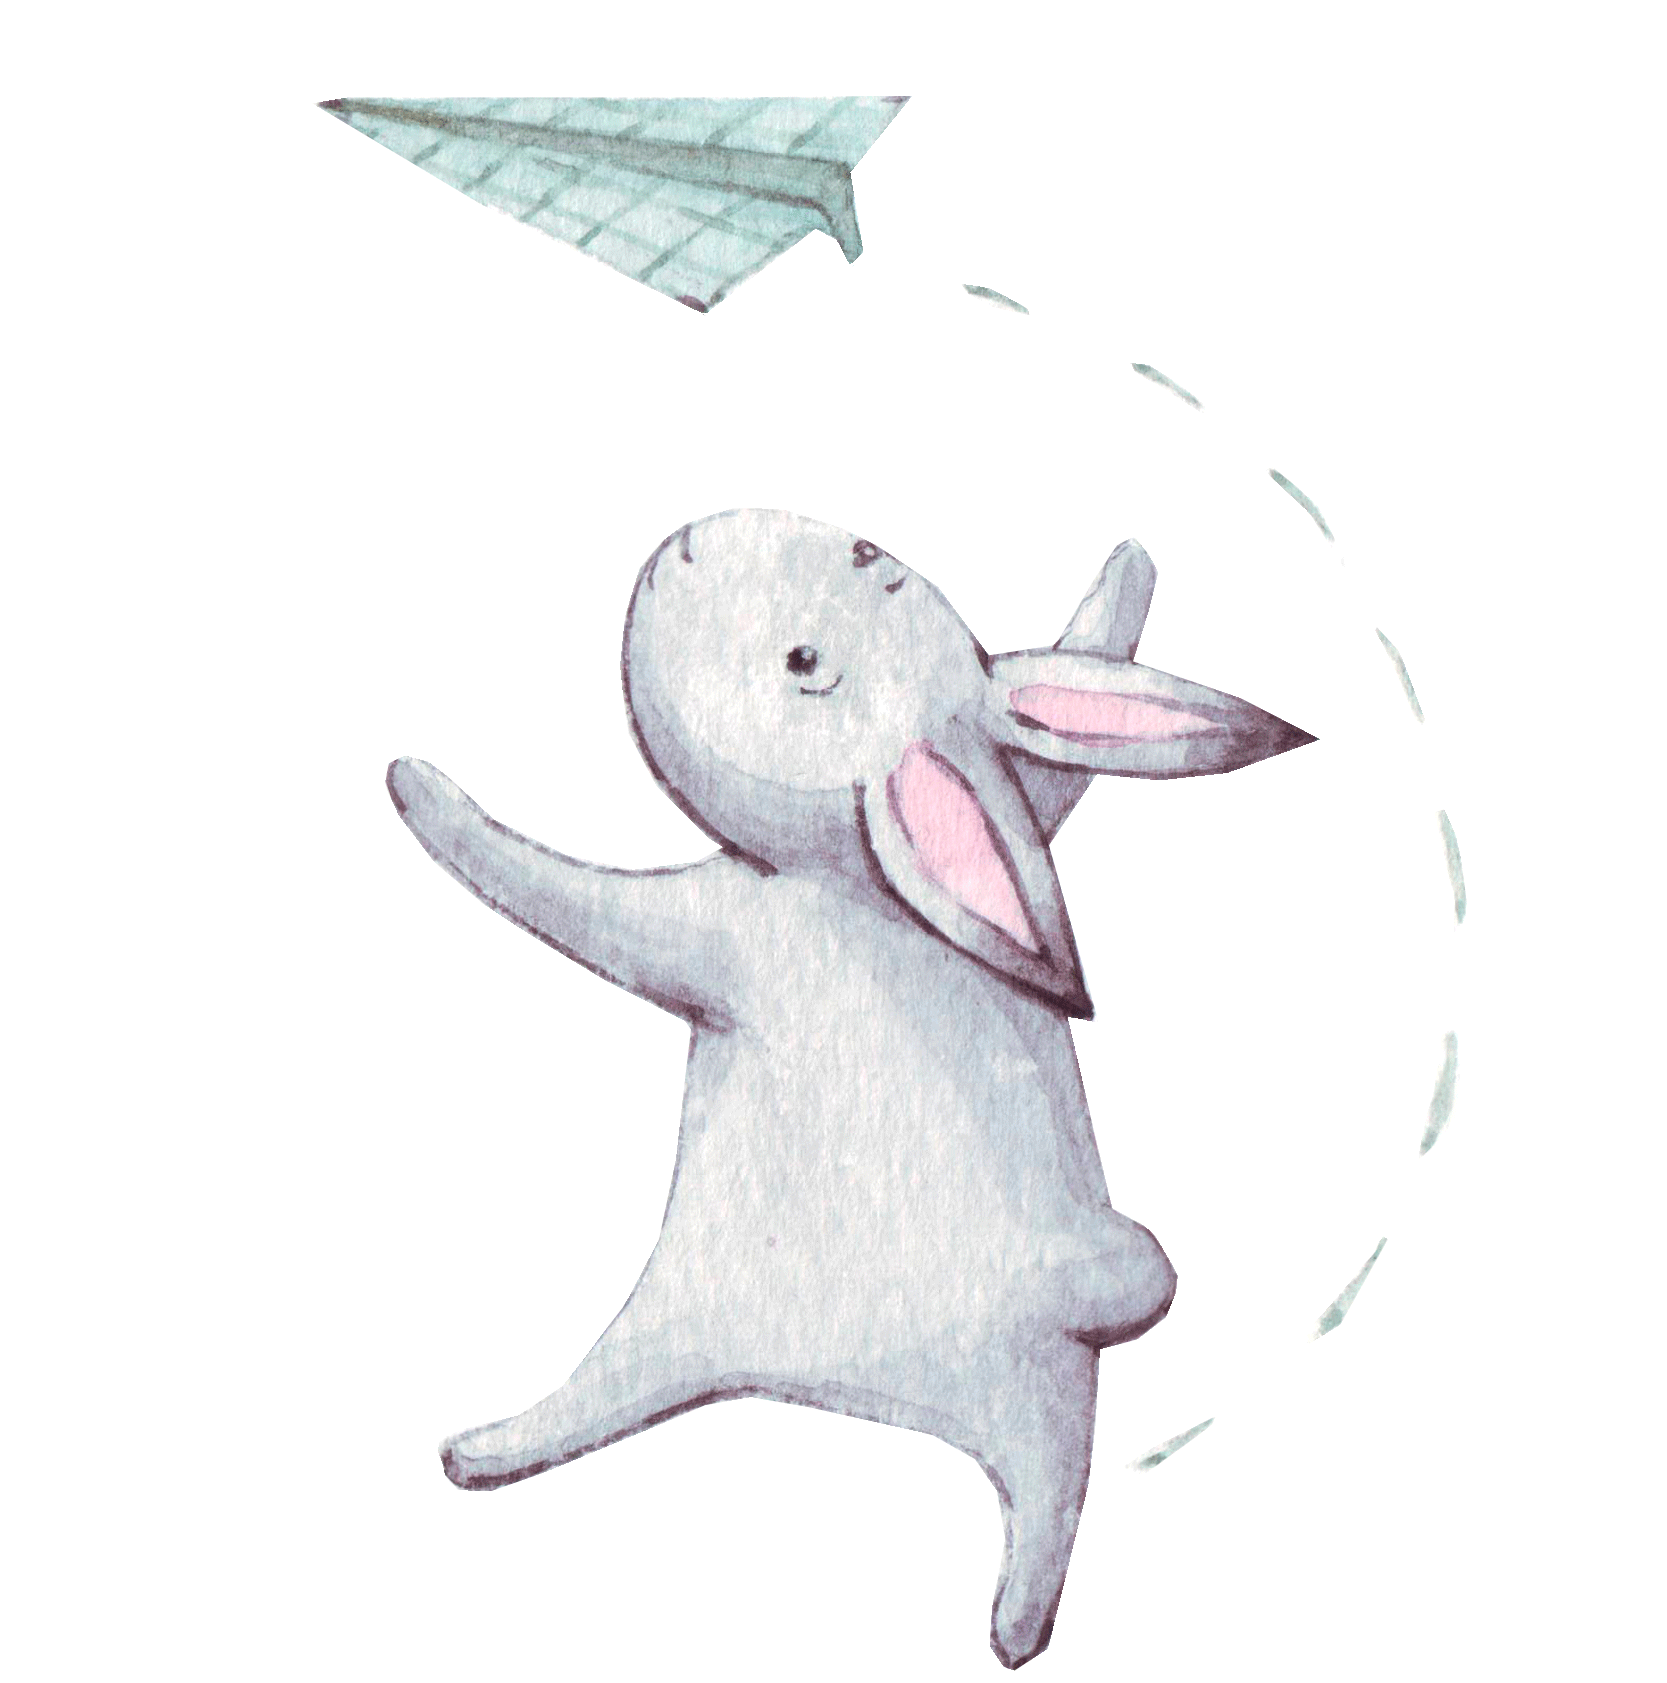 Illustration rabbit playing with origami plane